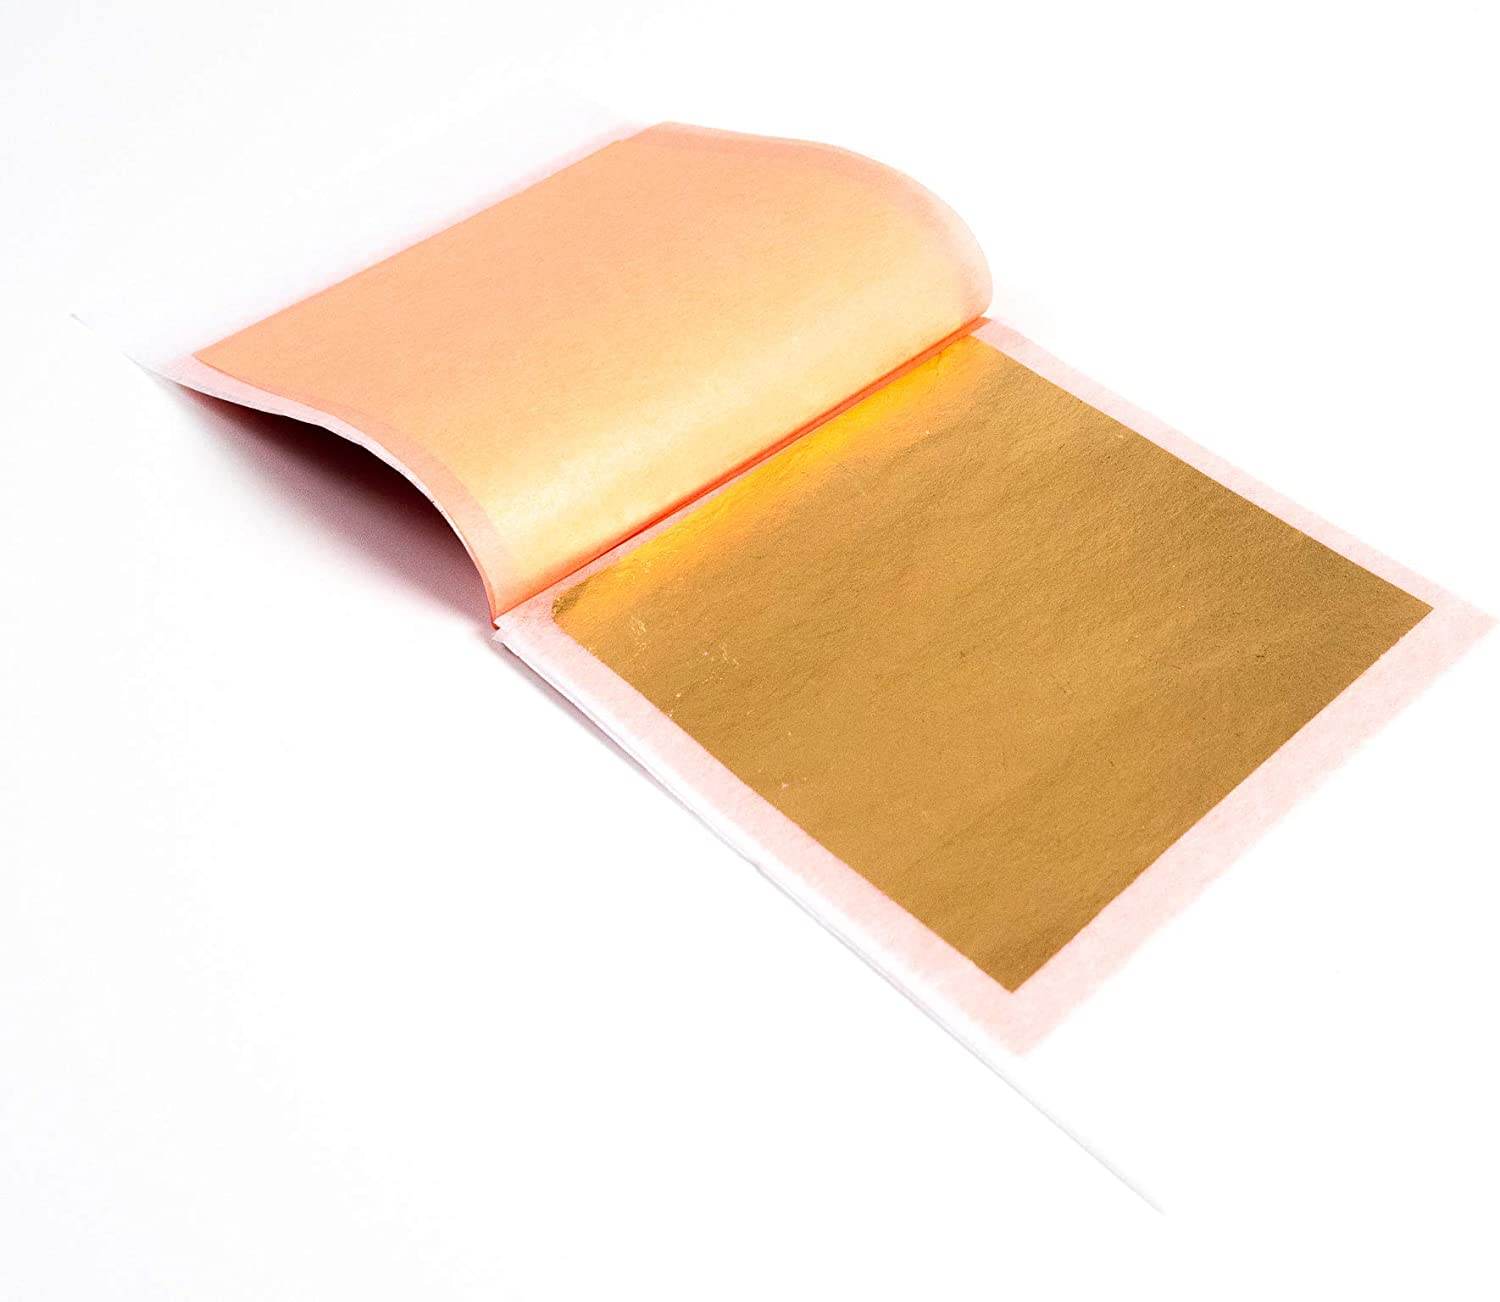 Slofoodgroup 24 Karat Edible Gold Leaf Lightly Attached Transfer Gold (10 Soft Press Transfer Sheets of Gold Leaf per Book) 3.15 in x 3.15in Lightly Attached Transfer Leaf Sheets